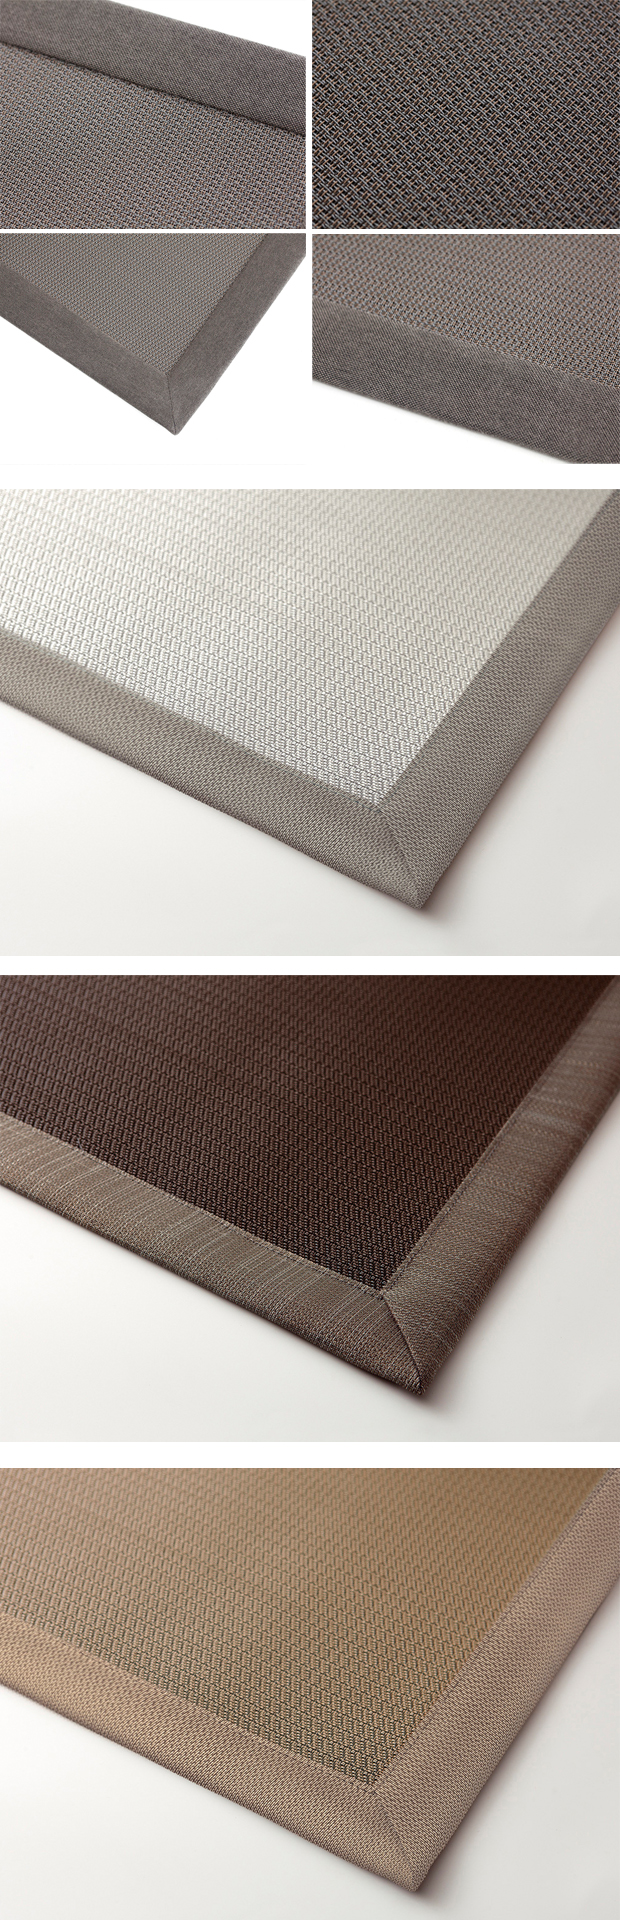 Outer rug Dickson by Gandia Blasco